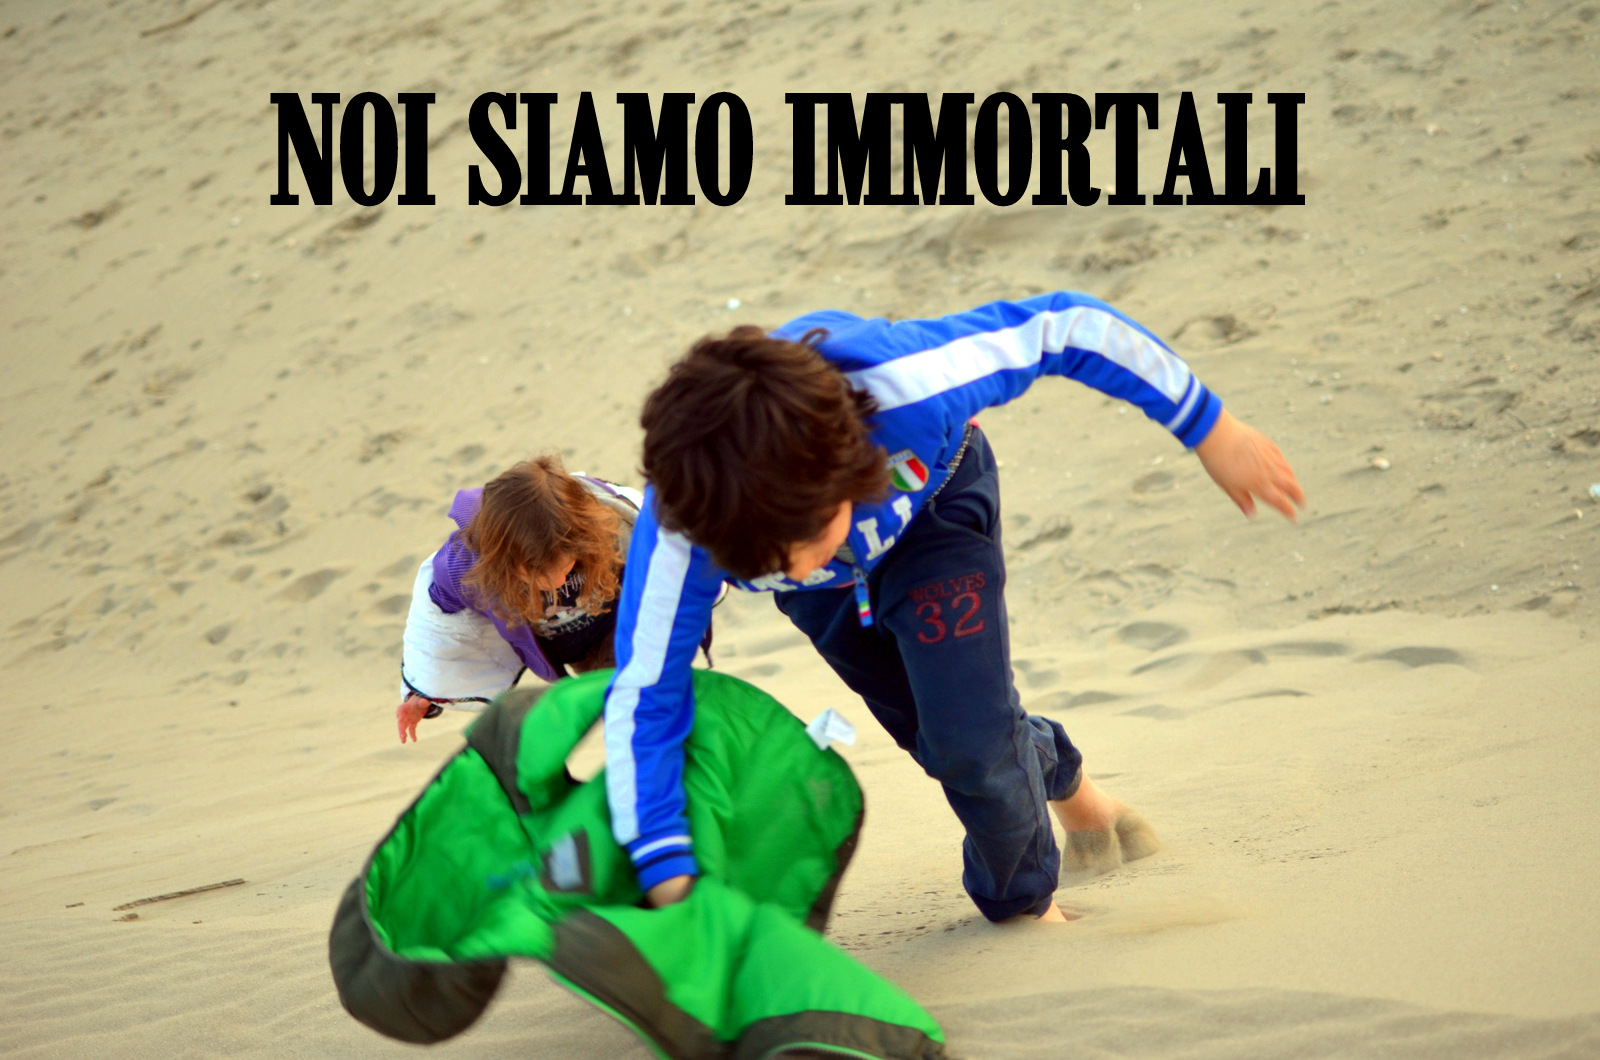 IMMORTALI 2